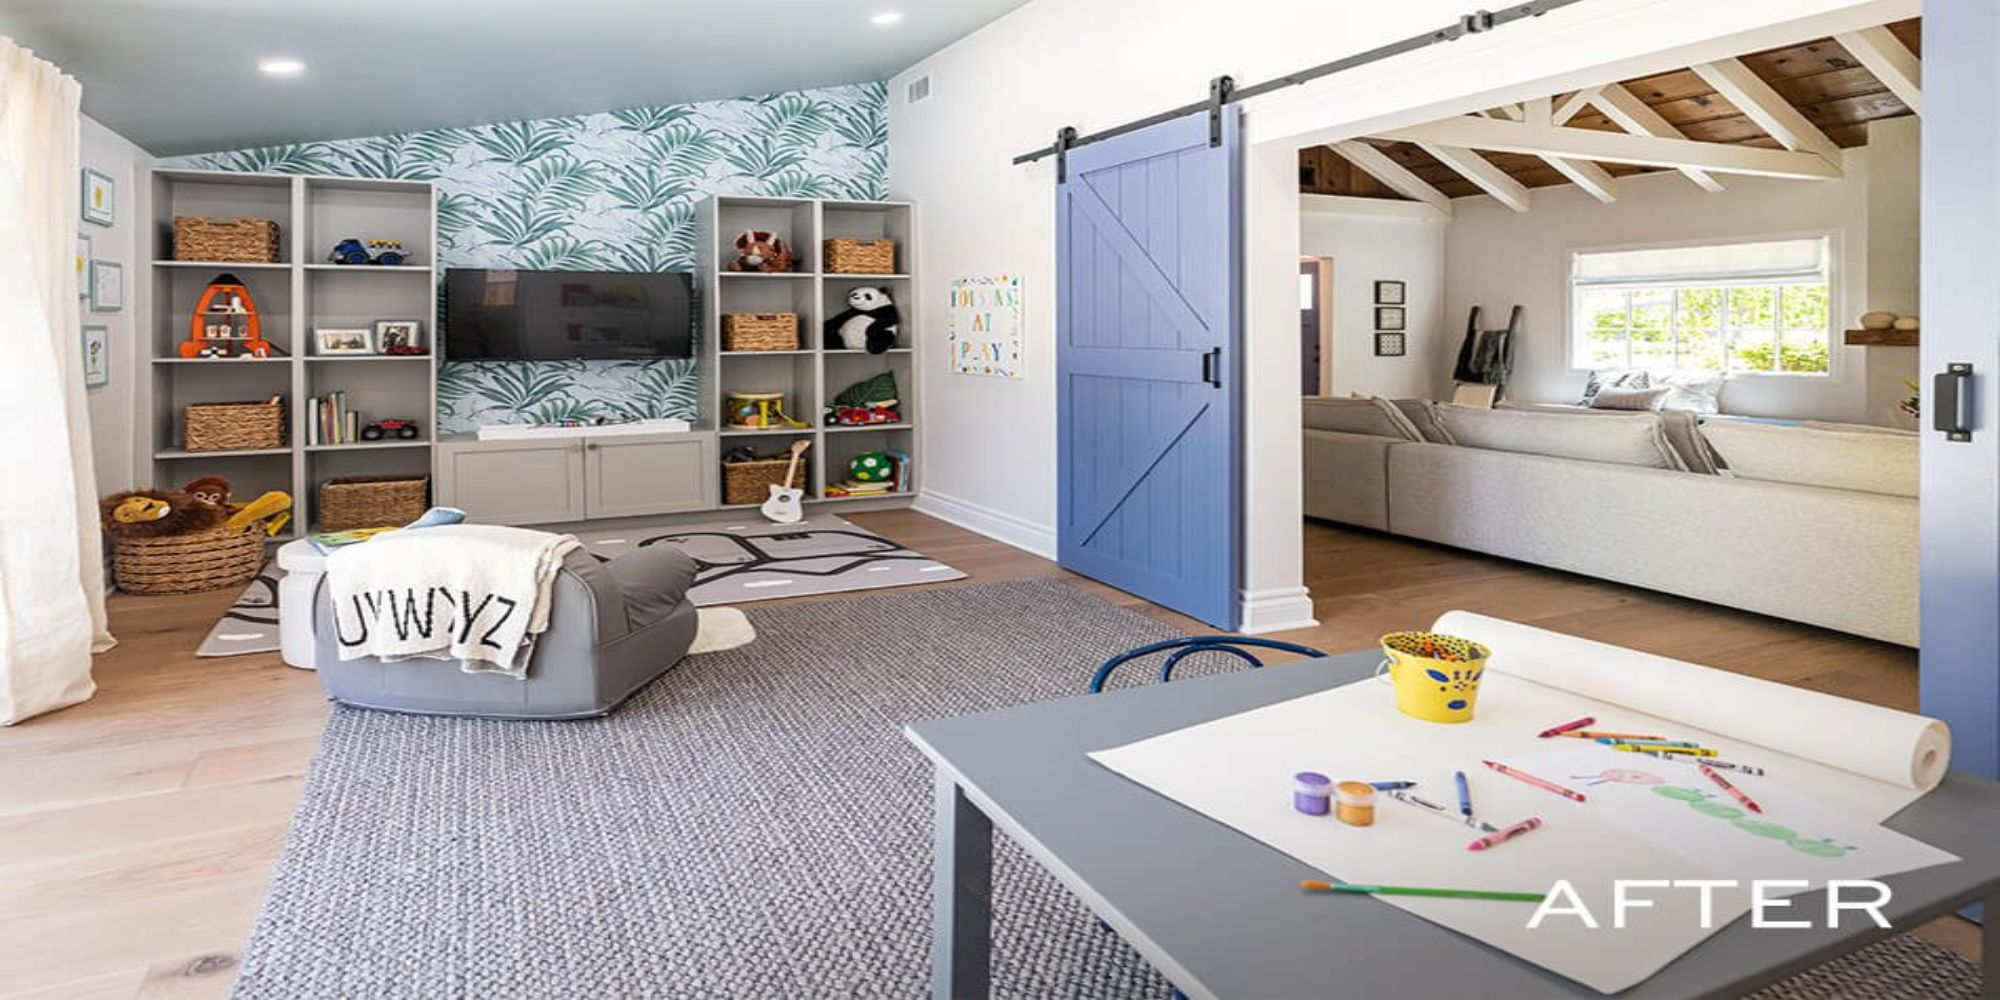 Sierra K-Design Biparting Barn Door Kit used by Property Brothers - painted in 'Searching Blue' by 'HGTV Home by Sherwin Williams'